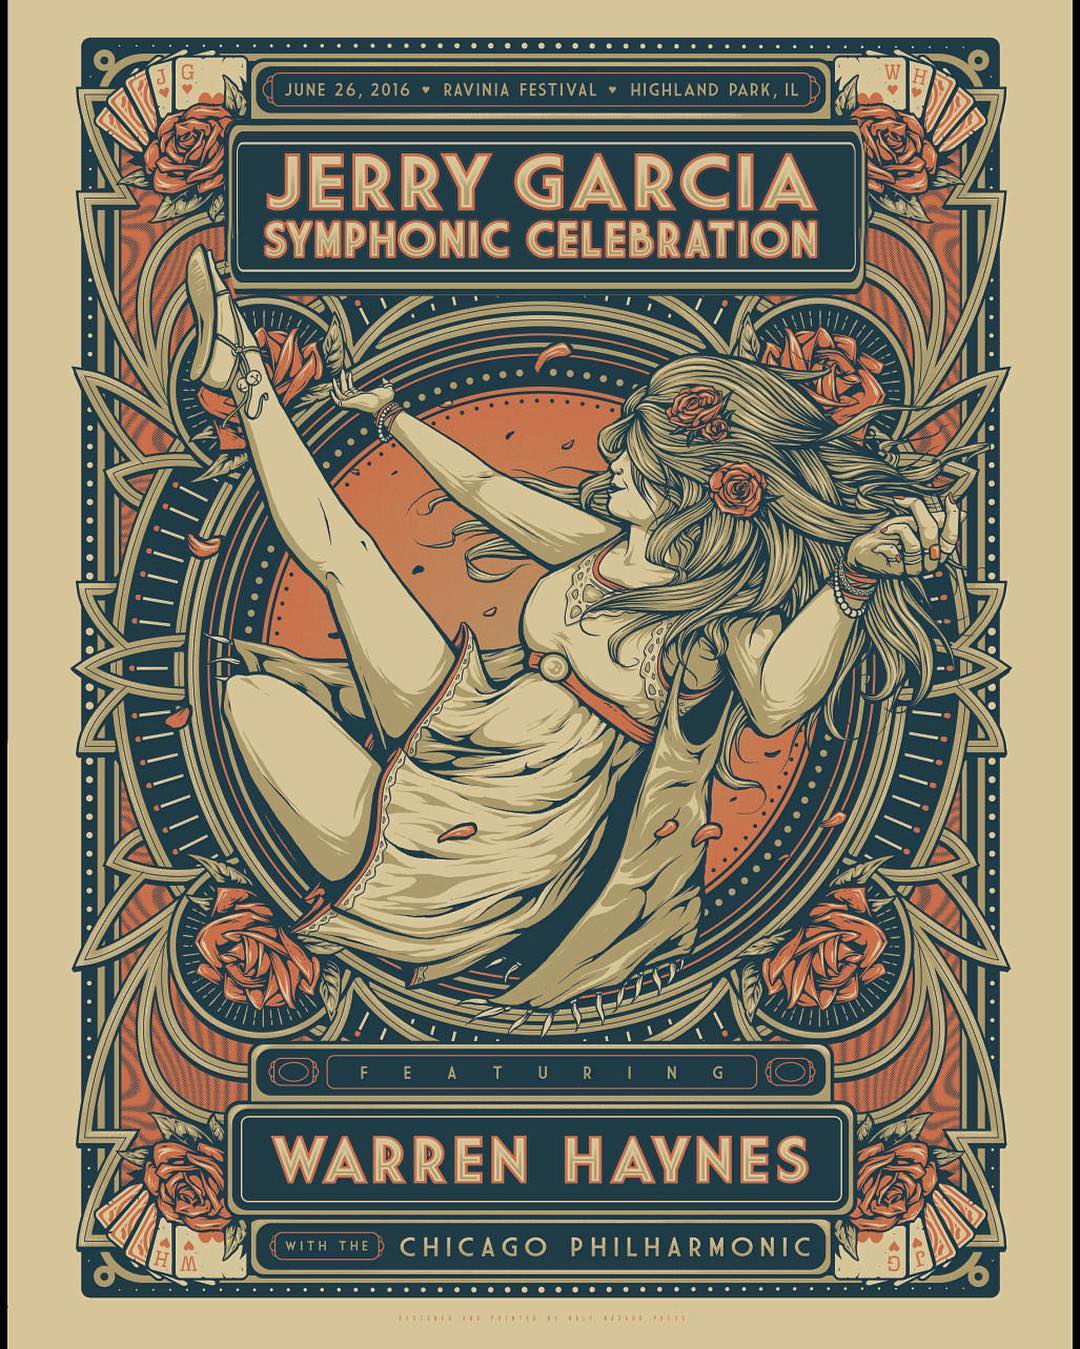 Setlist / Video | Jerry Garcia Symphonic Celebration with Warren Haynes @ Ravinia 6/26/16